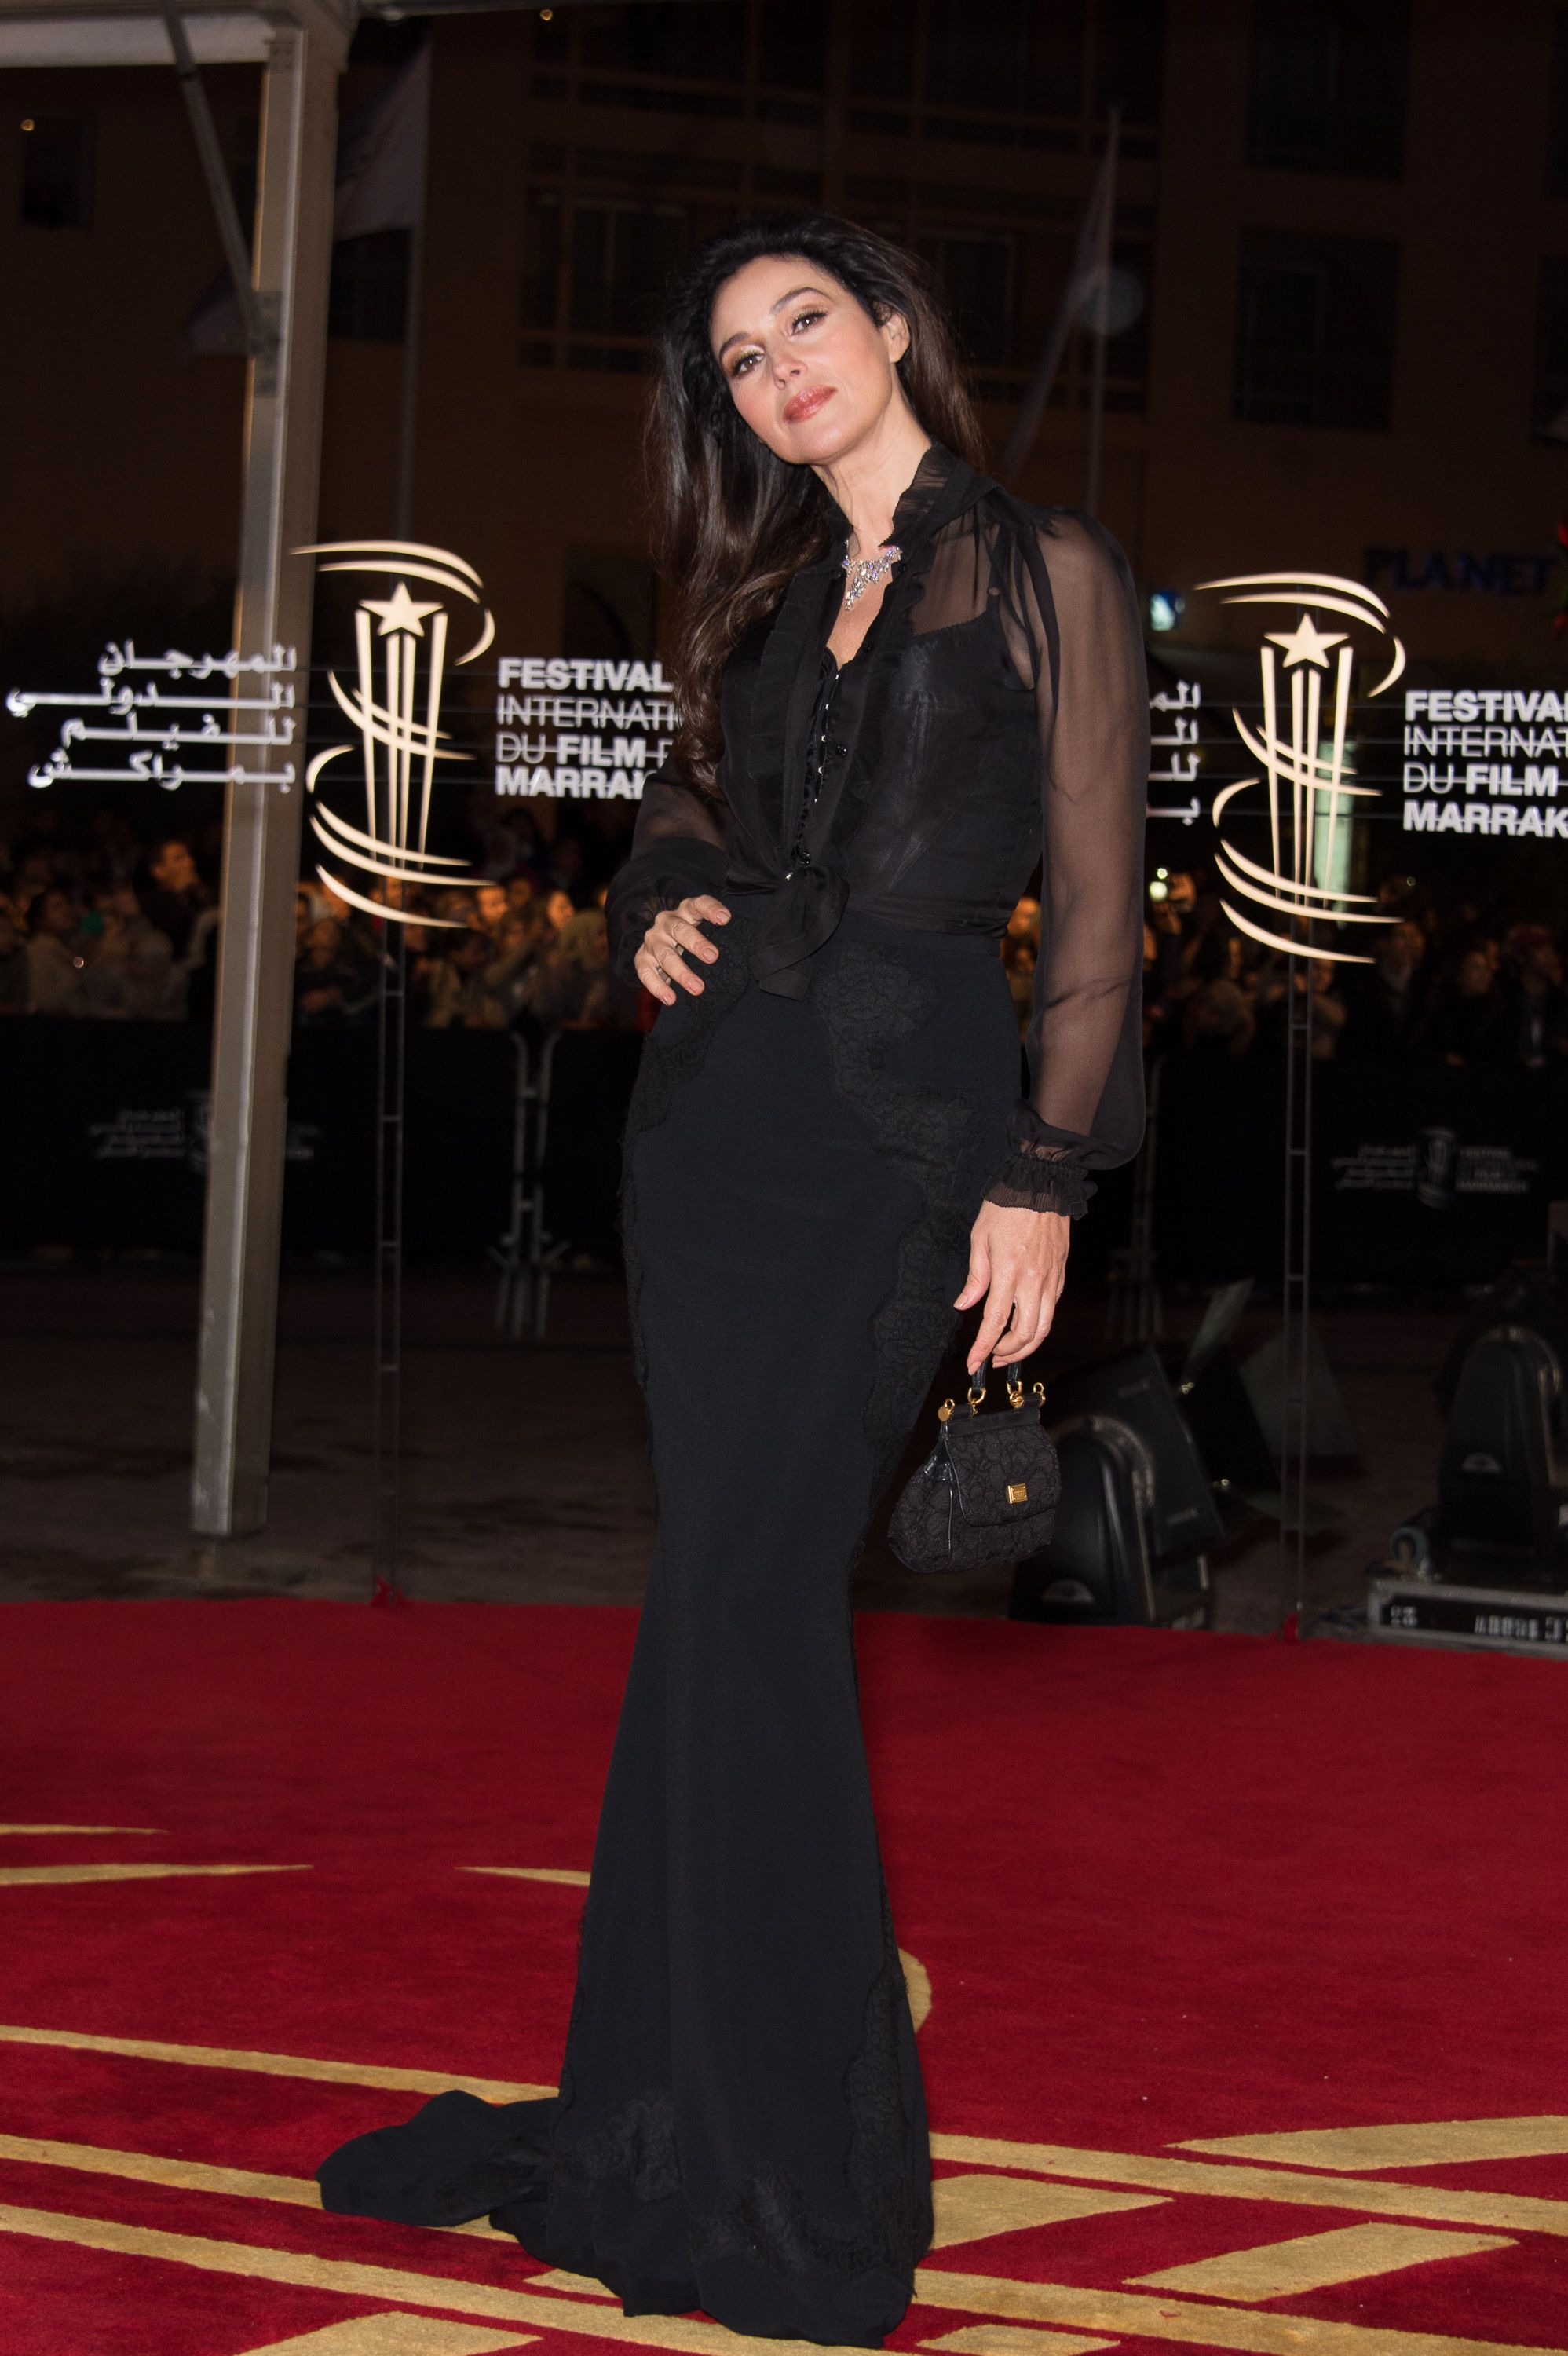 Monica Bellucci In Dolcegabbana At The Marrakech Film